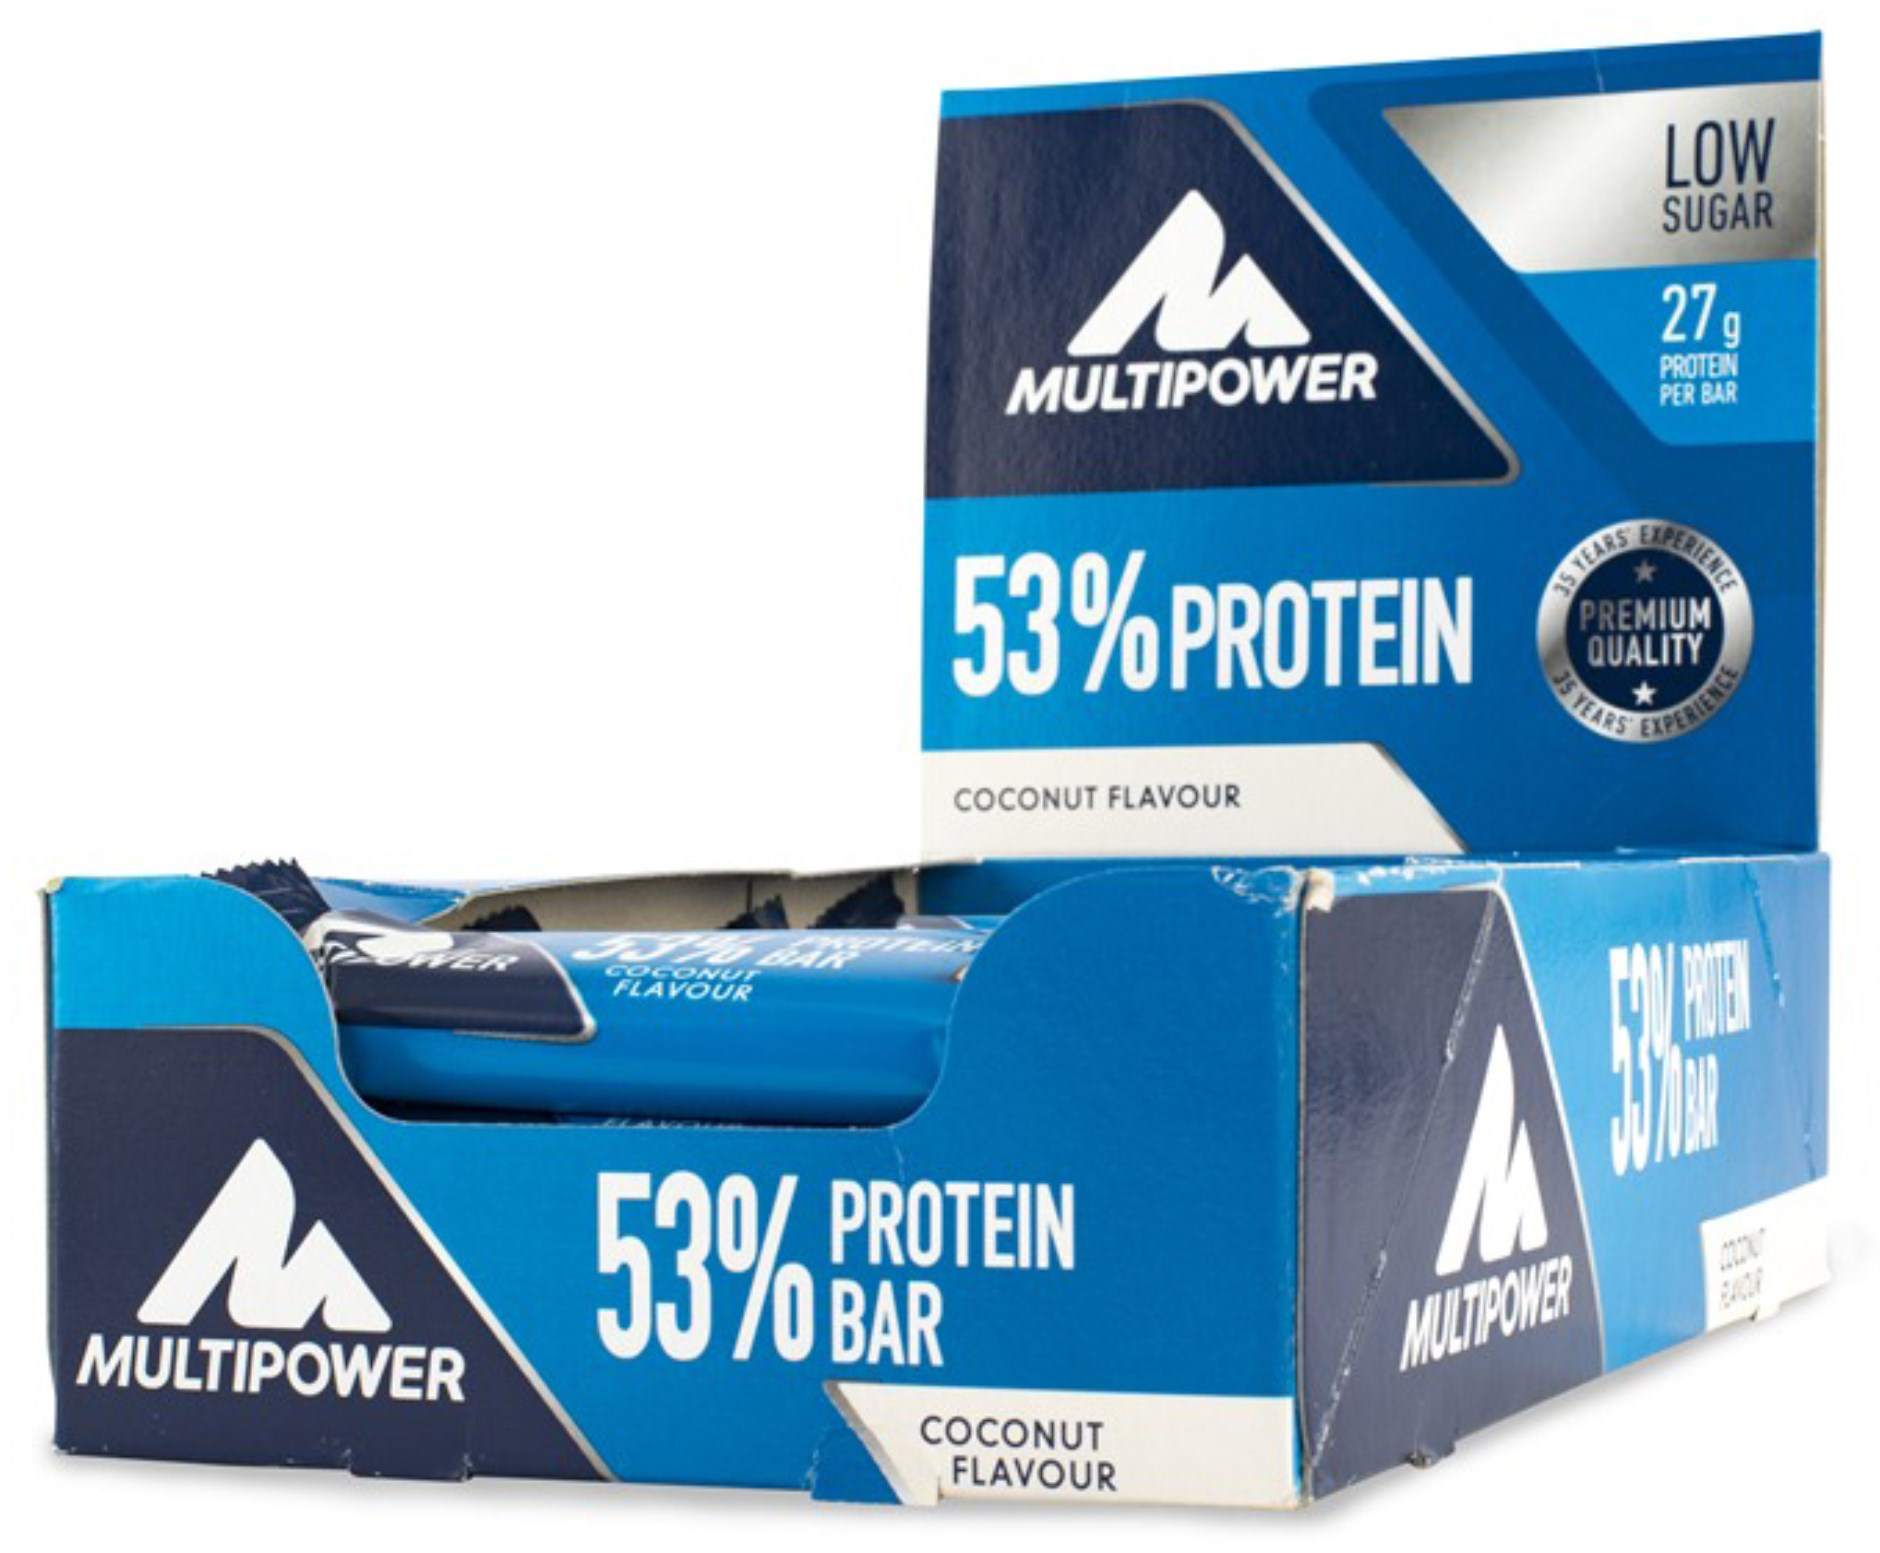 Multipower 53% Protein Bar,  - Multipower